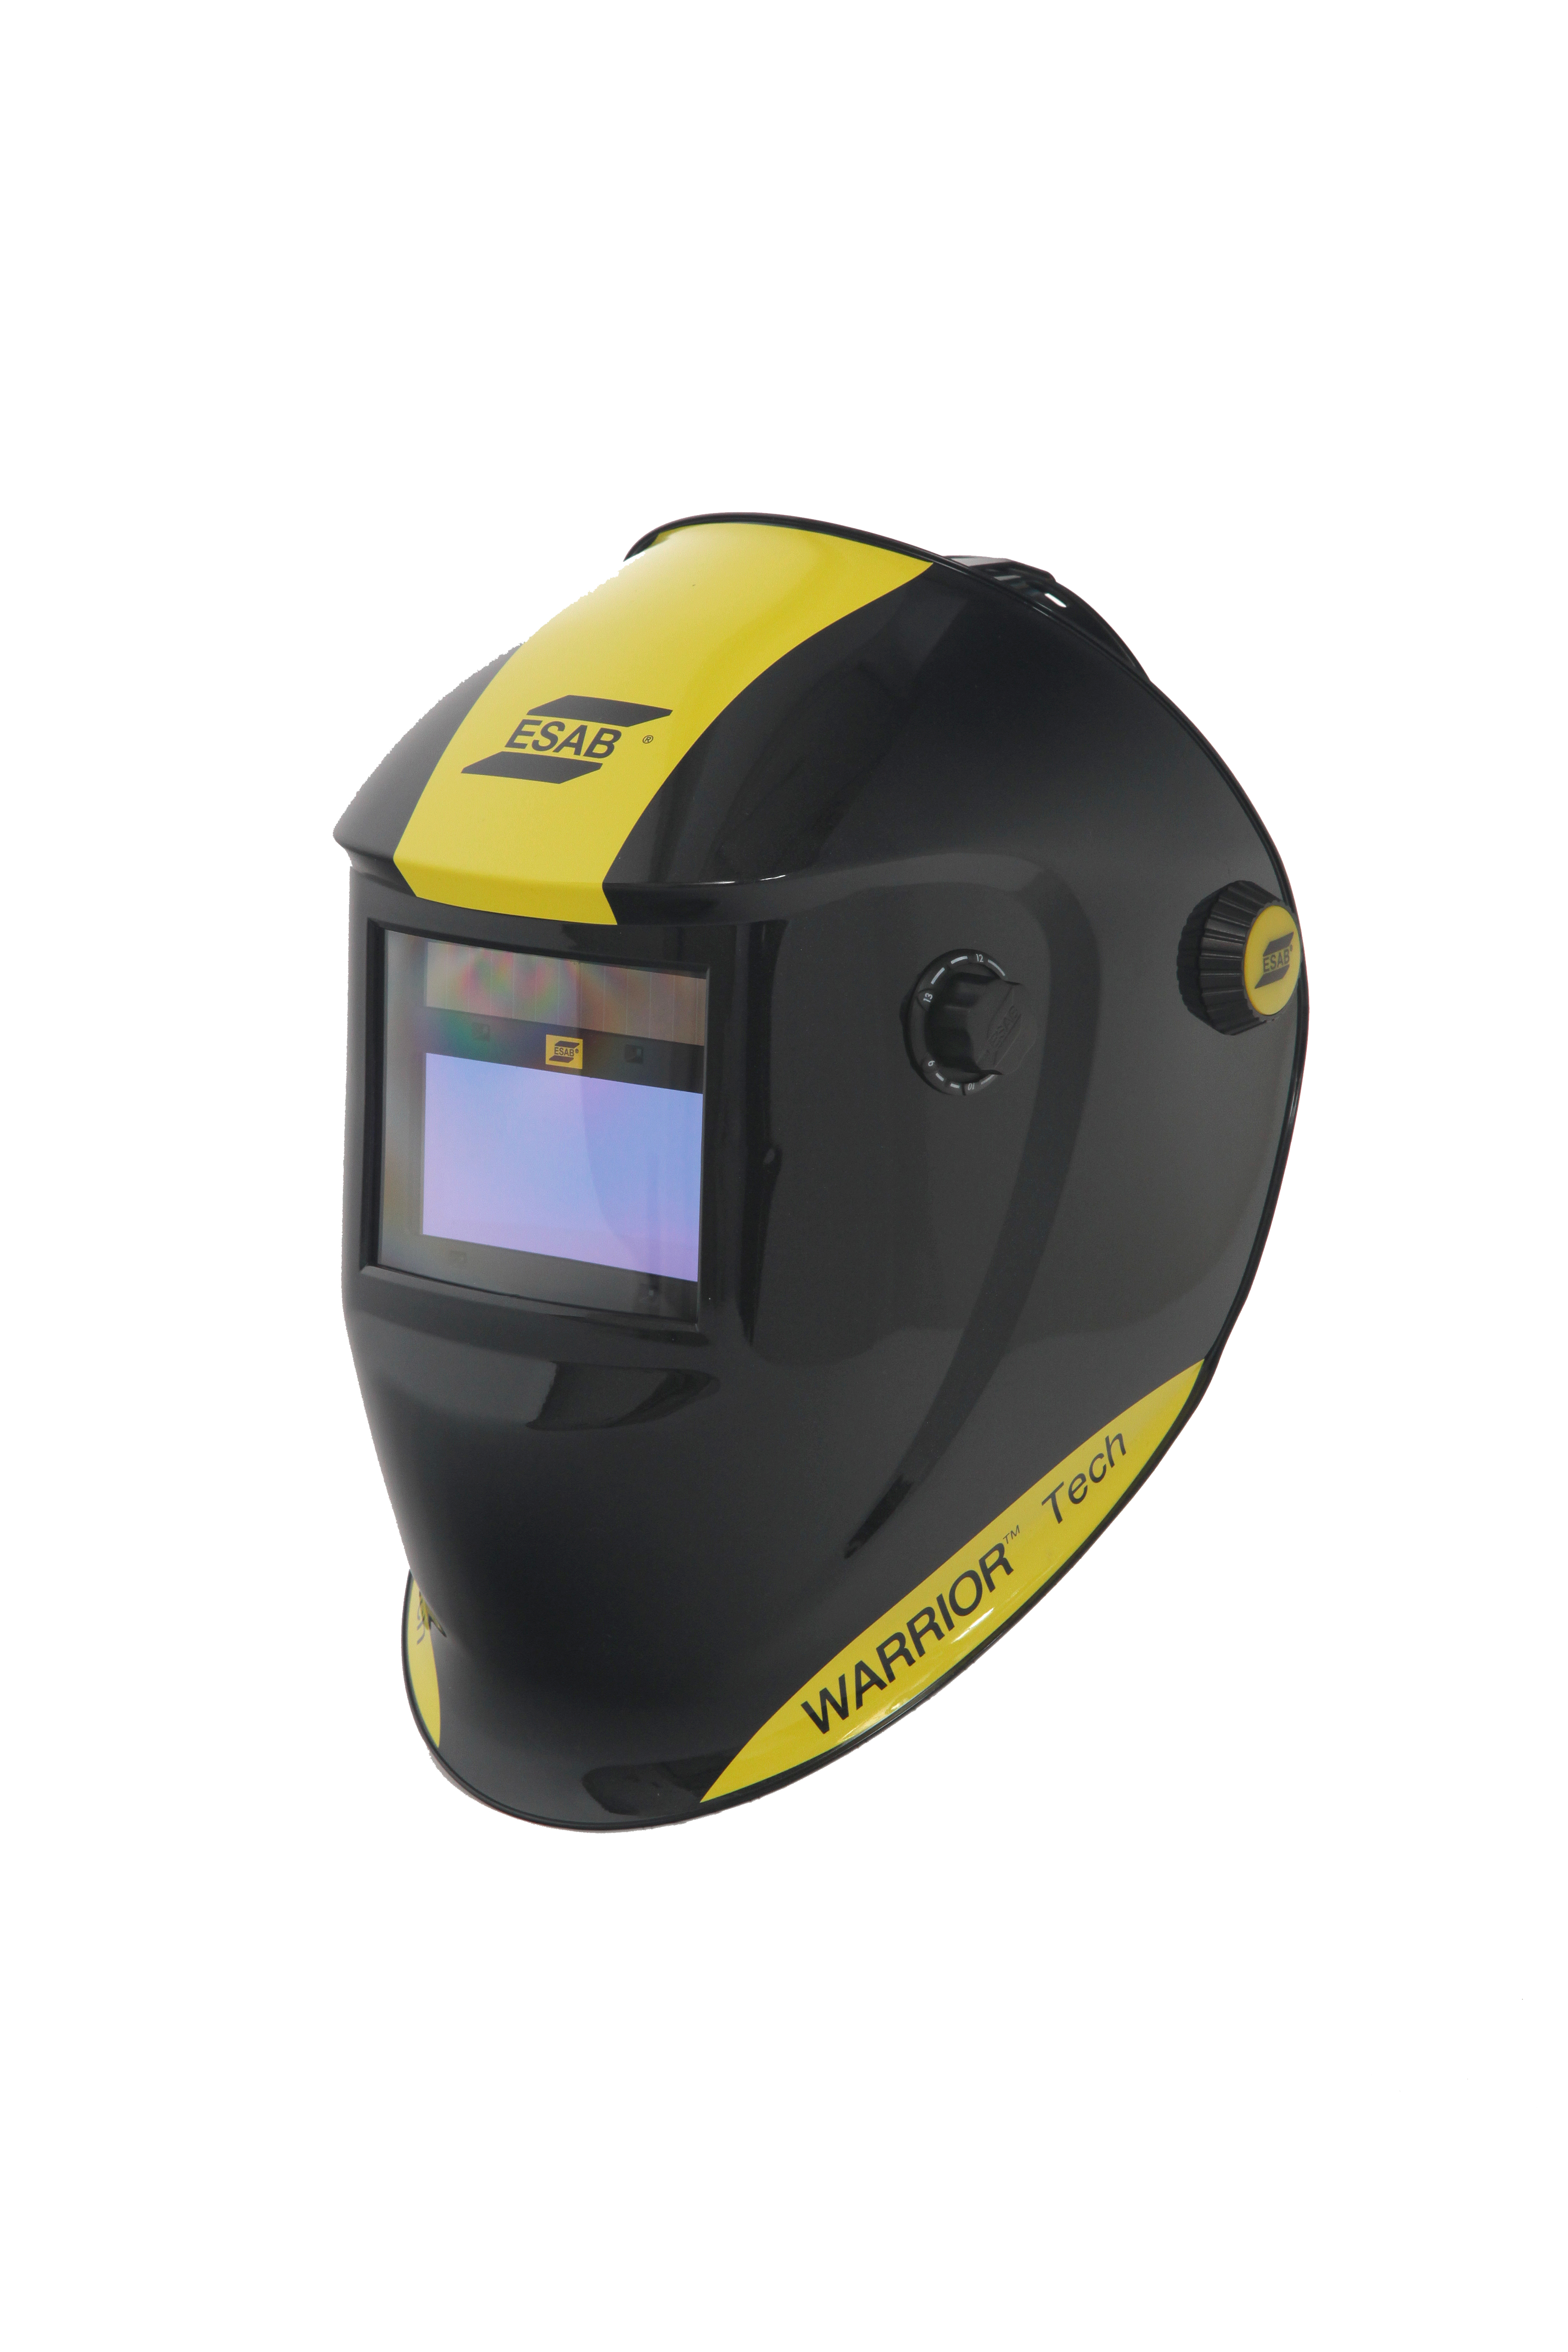 esab warrior head shield